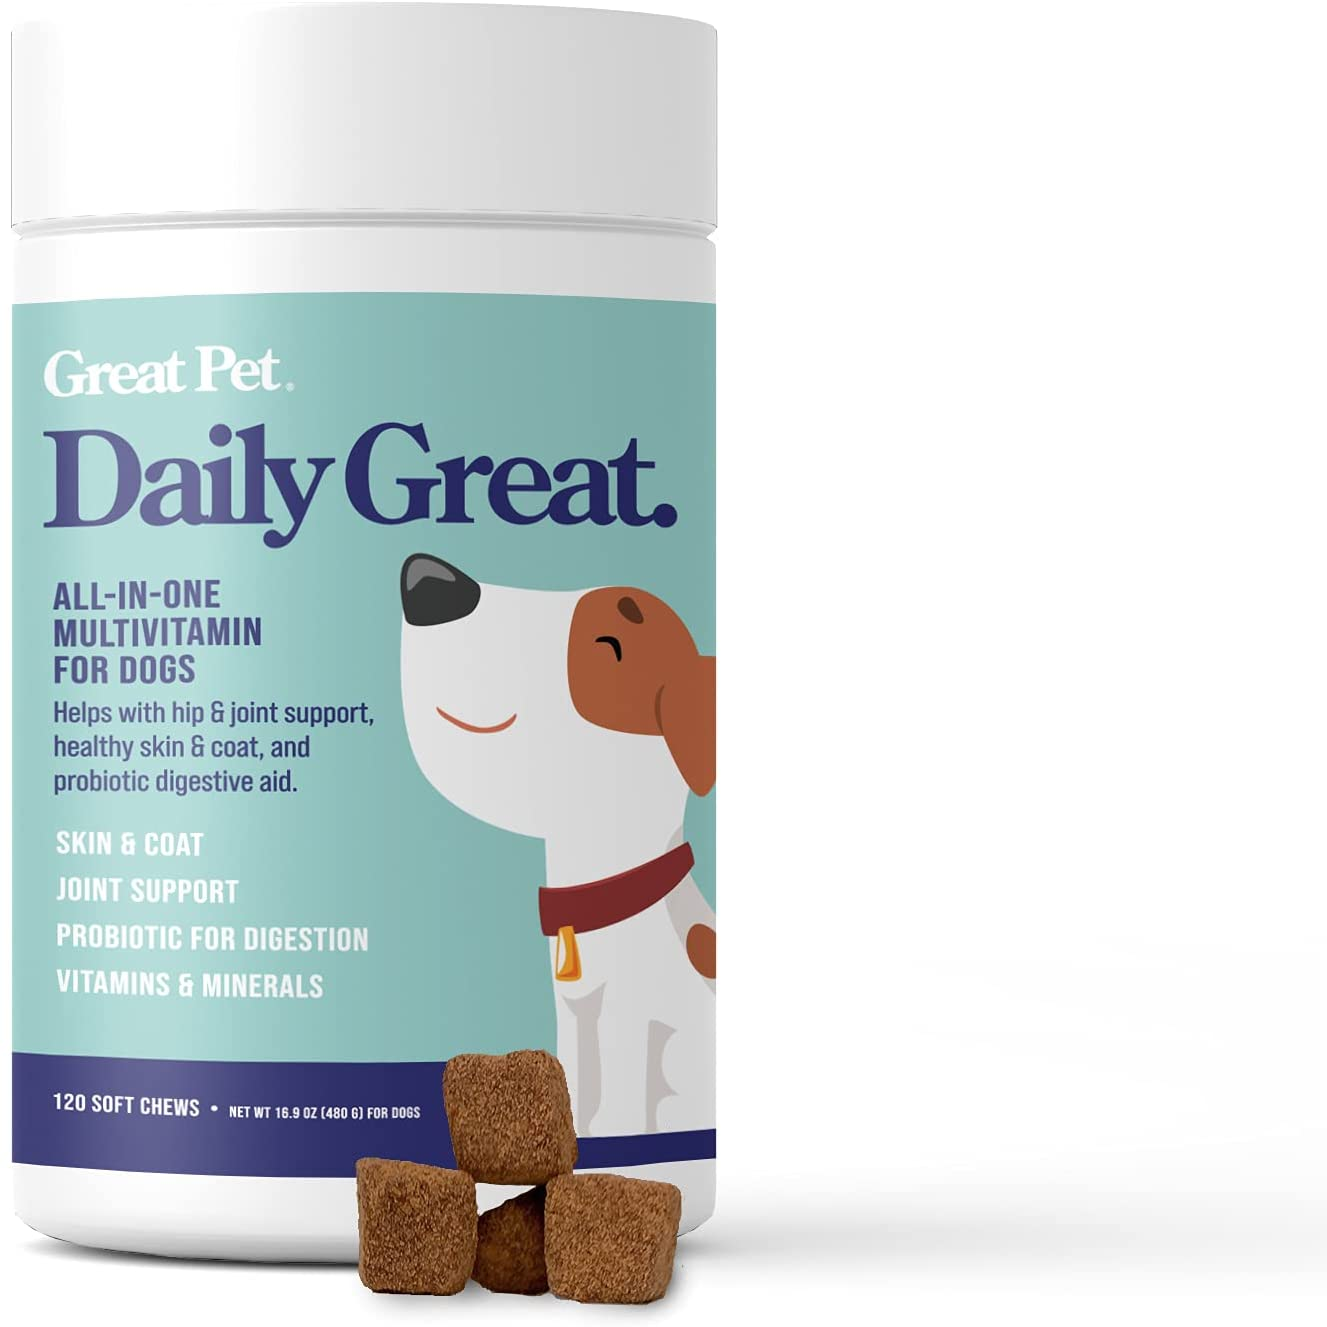 Daily Great Multivitamins for Dogs